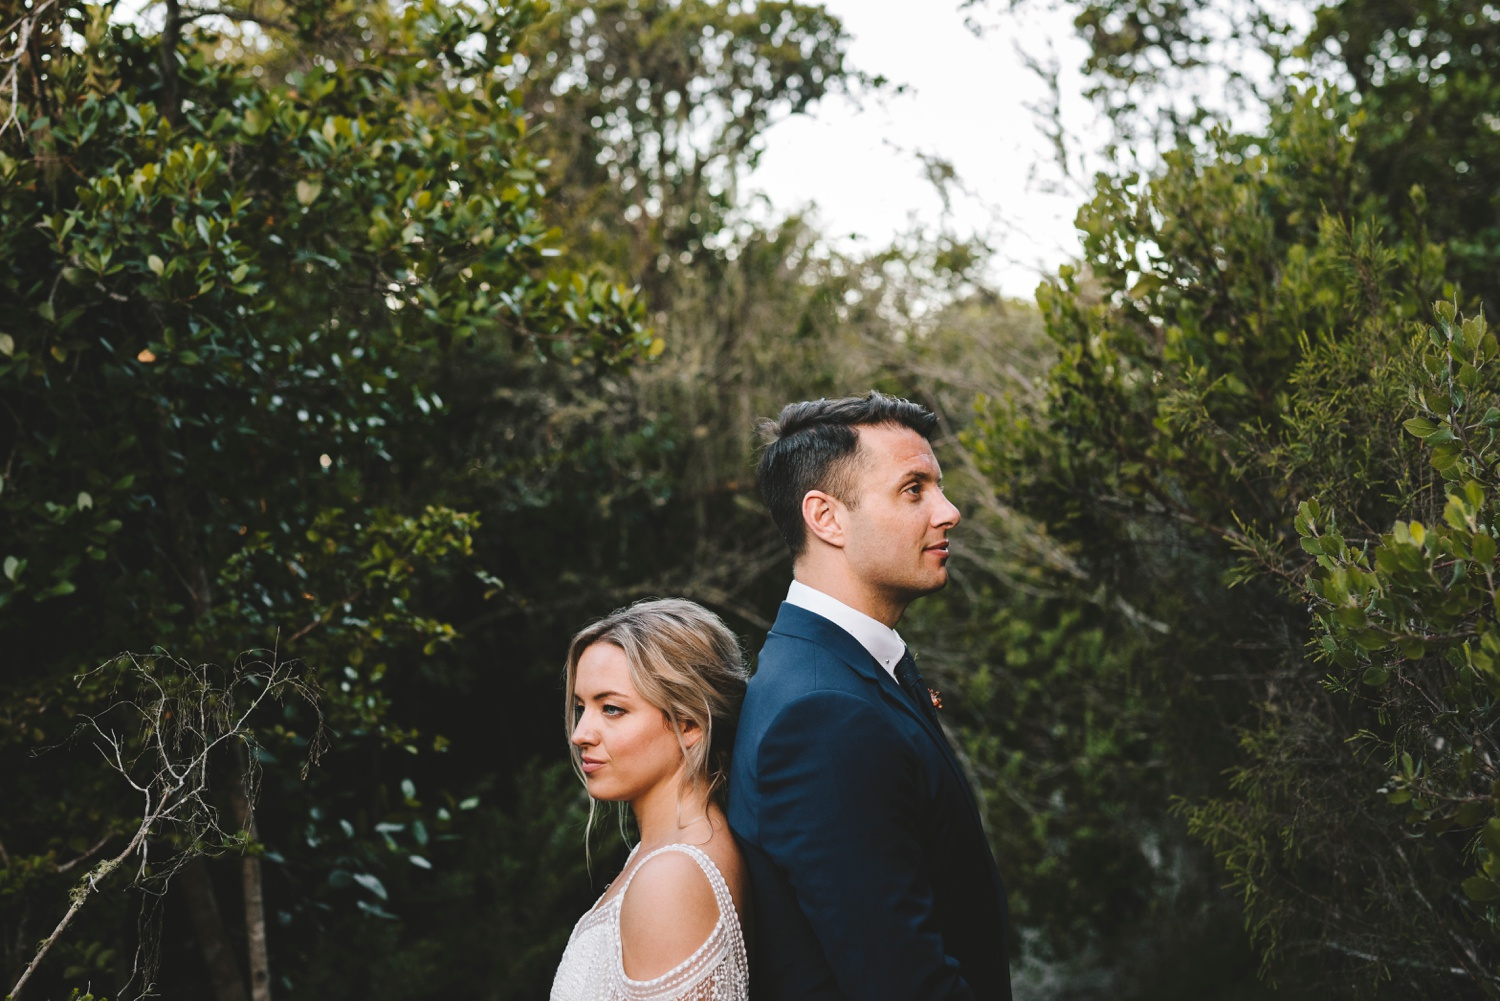 charlie_ray_photography_runaway_romance_elopement_emily_moon_plett_simple_boho_wedding_south_africa_bohemium_0097.jpg